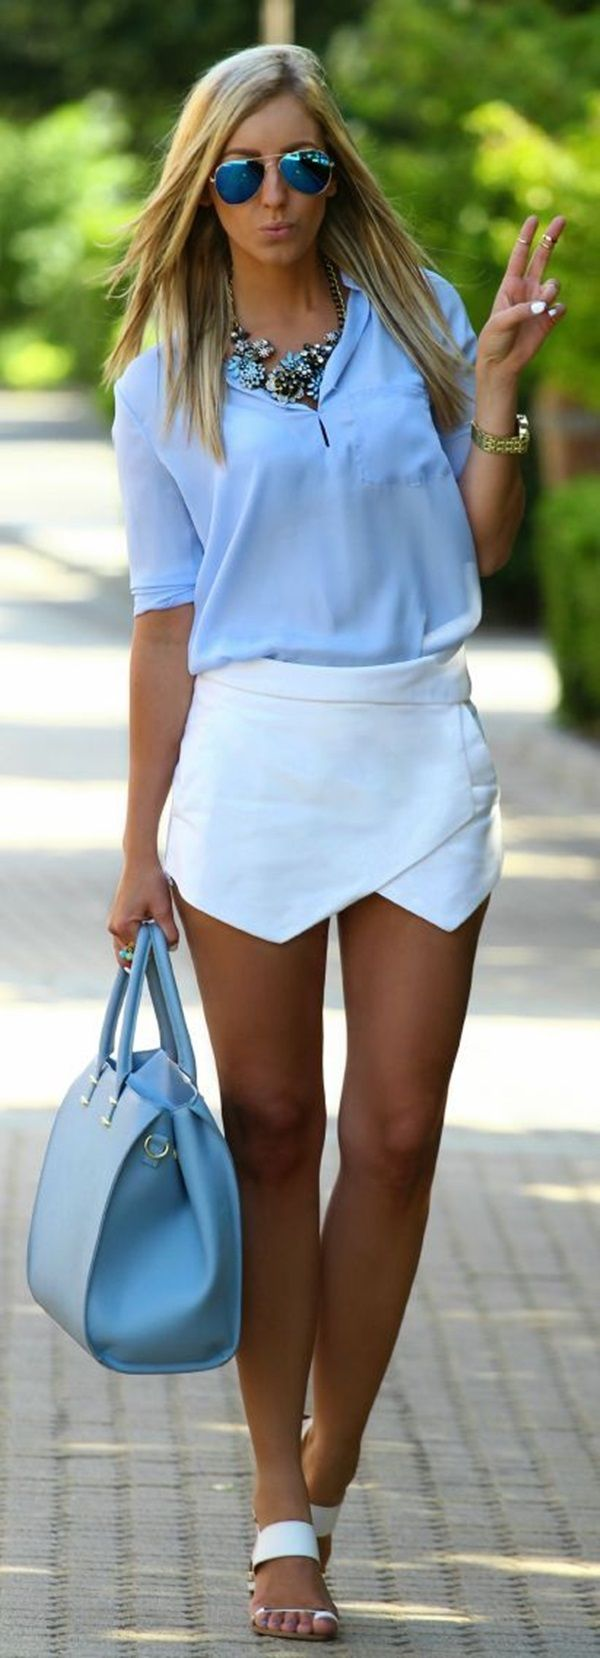 100 Real Women Outfits (No Models) to Try This Year | Real women ...